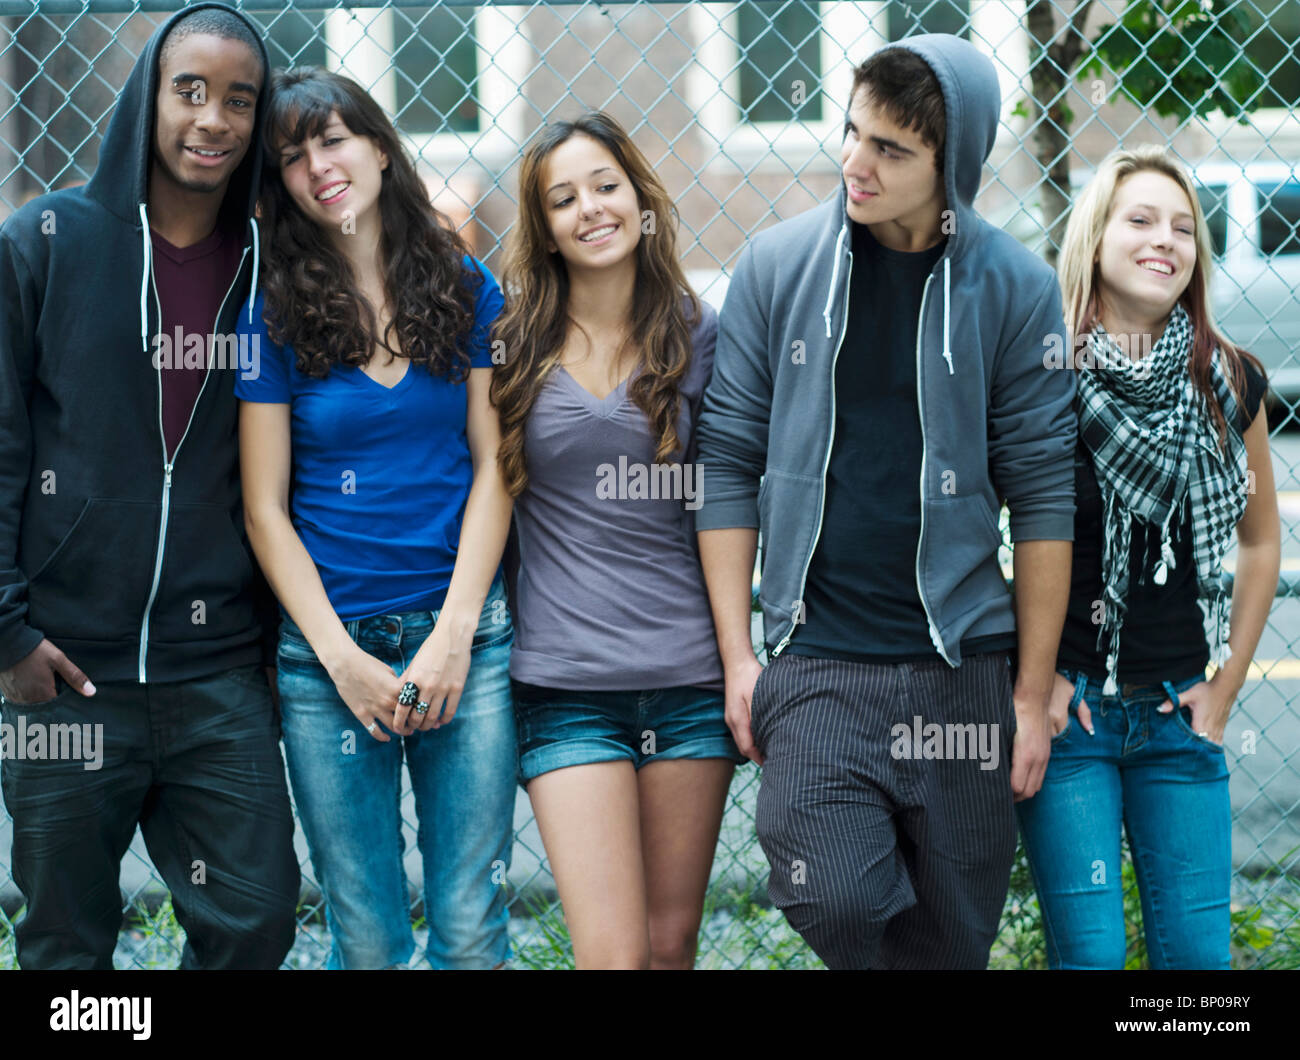 5 teenagers leaning against chain link fence - Stock Image